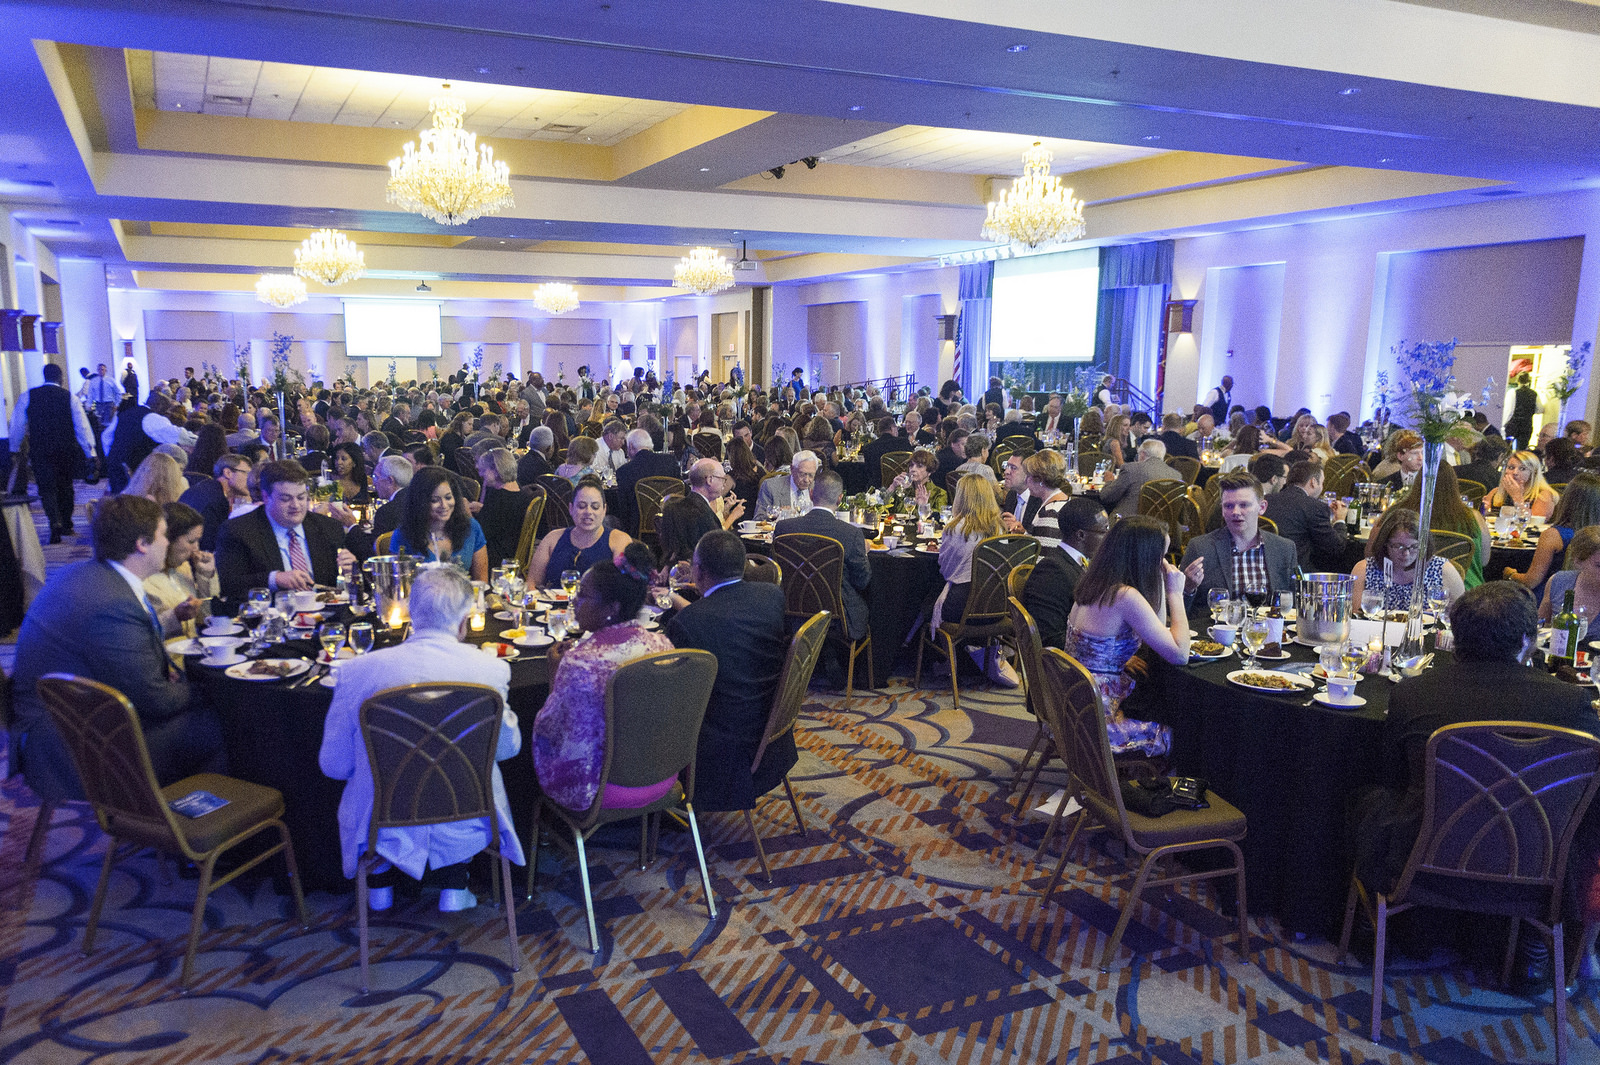 Guests eating at the Pillars of Excellence event.